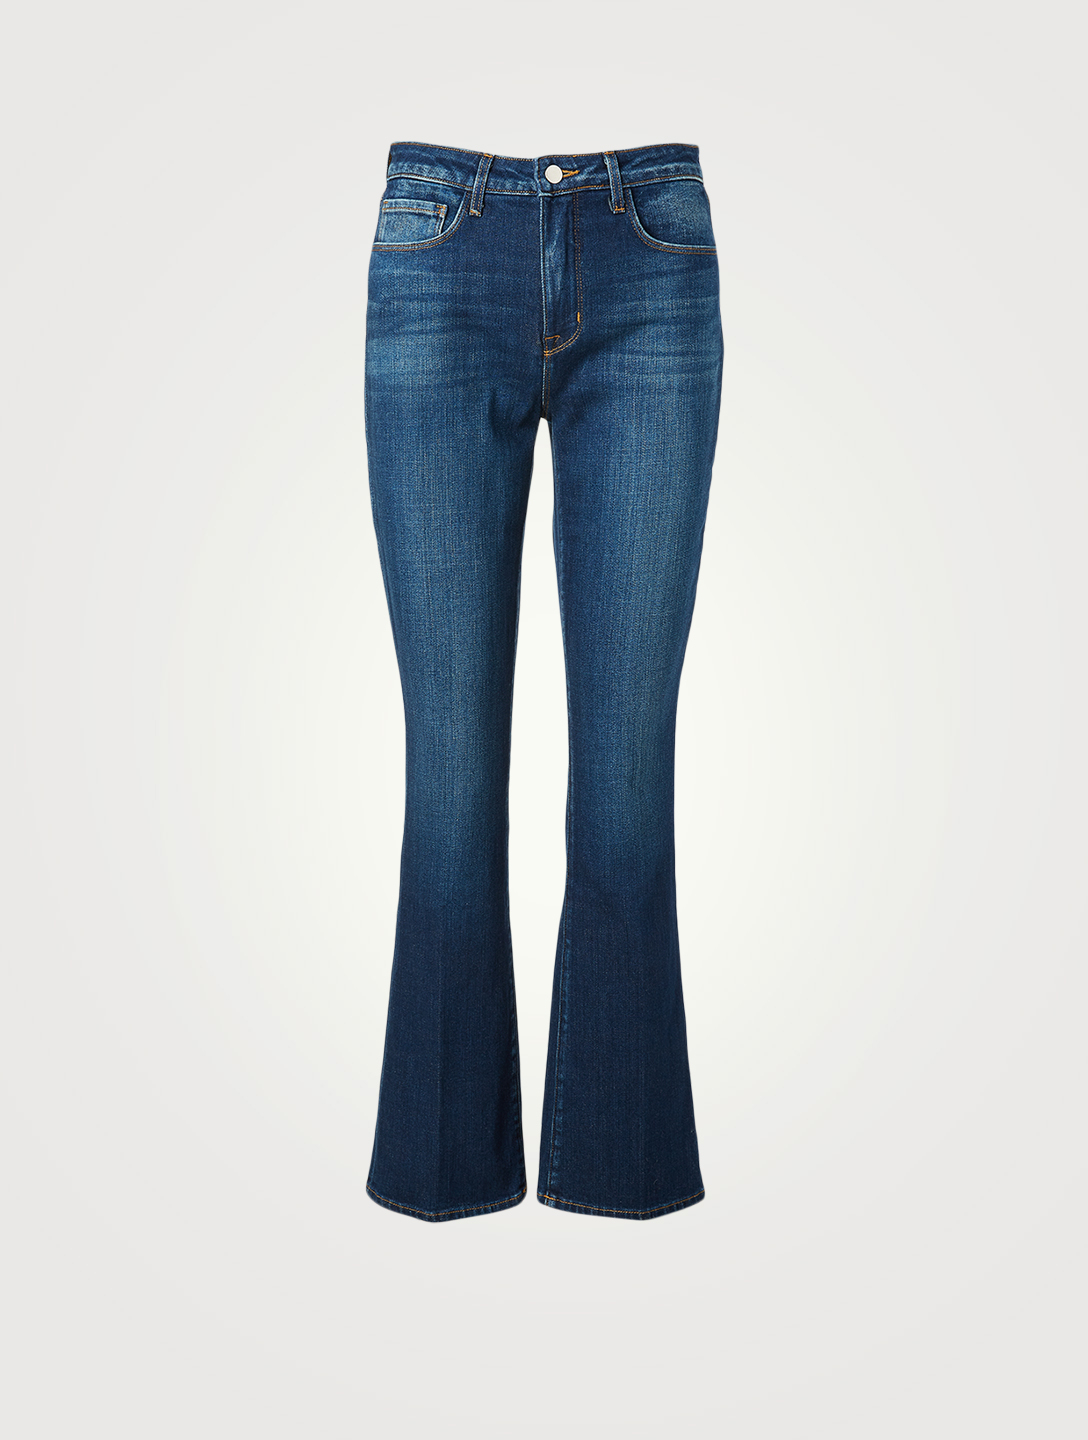 L'AGENCE Oriana Straight High-Waisted Jeans Women's Blue